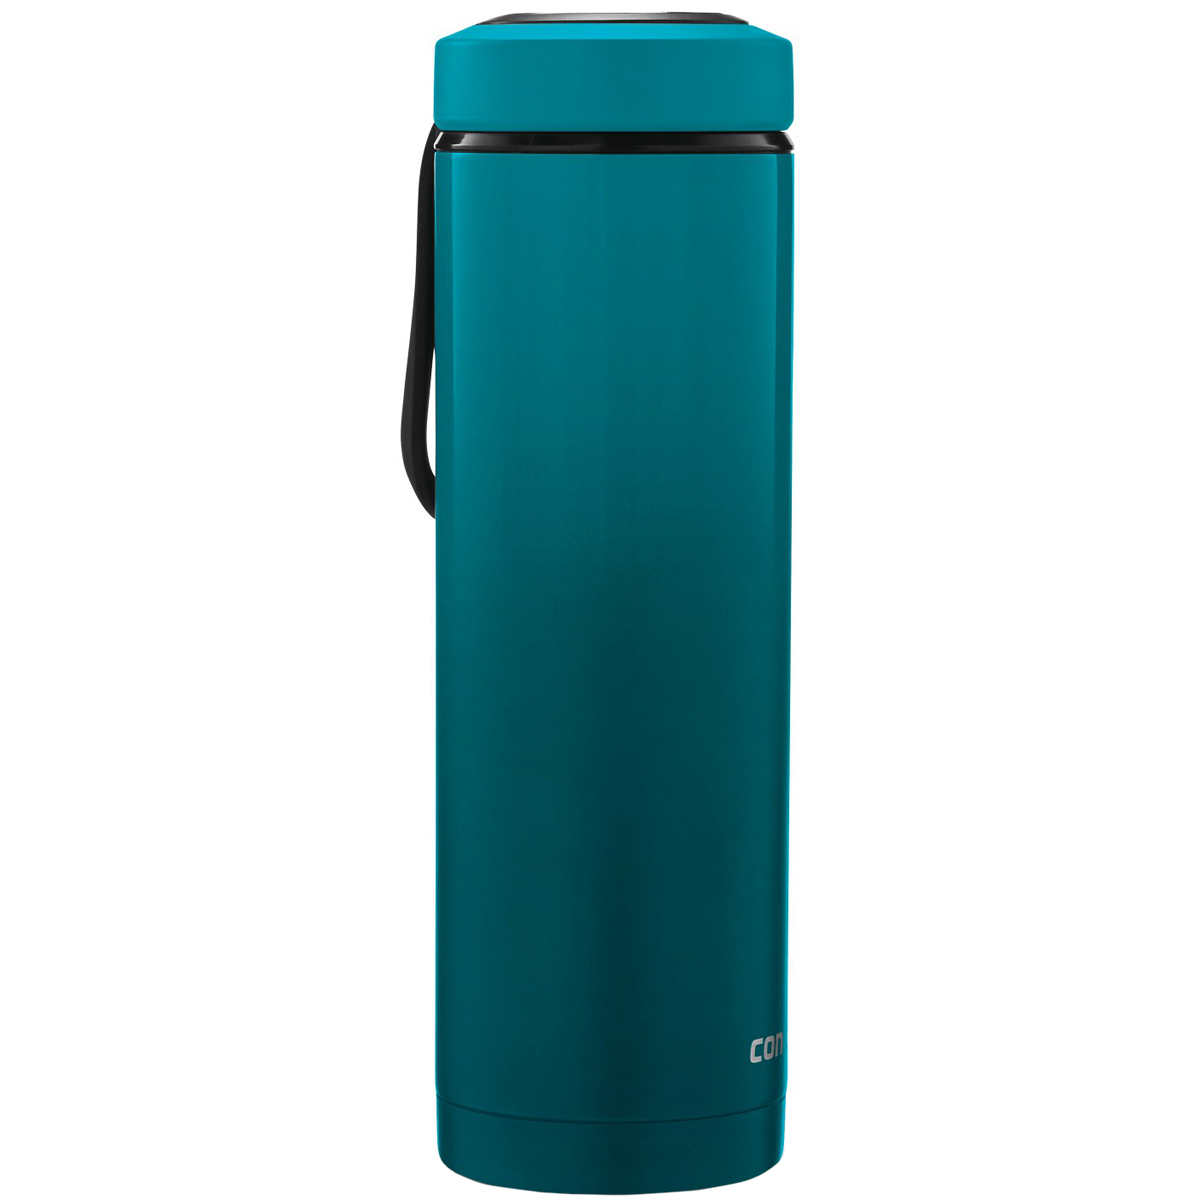 Contigo-24-oz-Evoke-Quick-Twist-Lid-Insulated-Stainless-Steel-Water-Bottle thumbnail 16